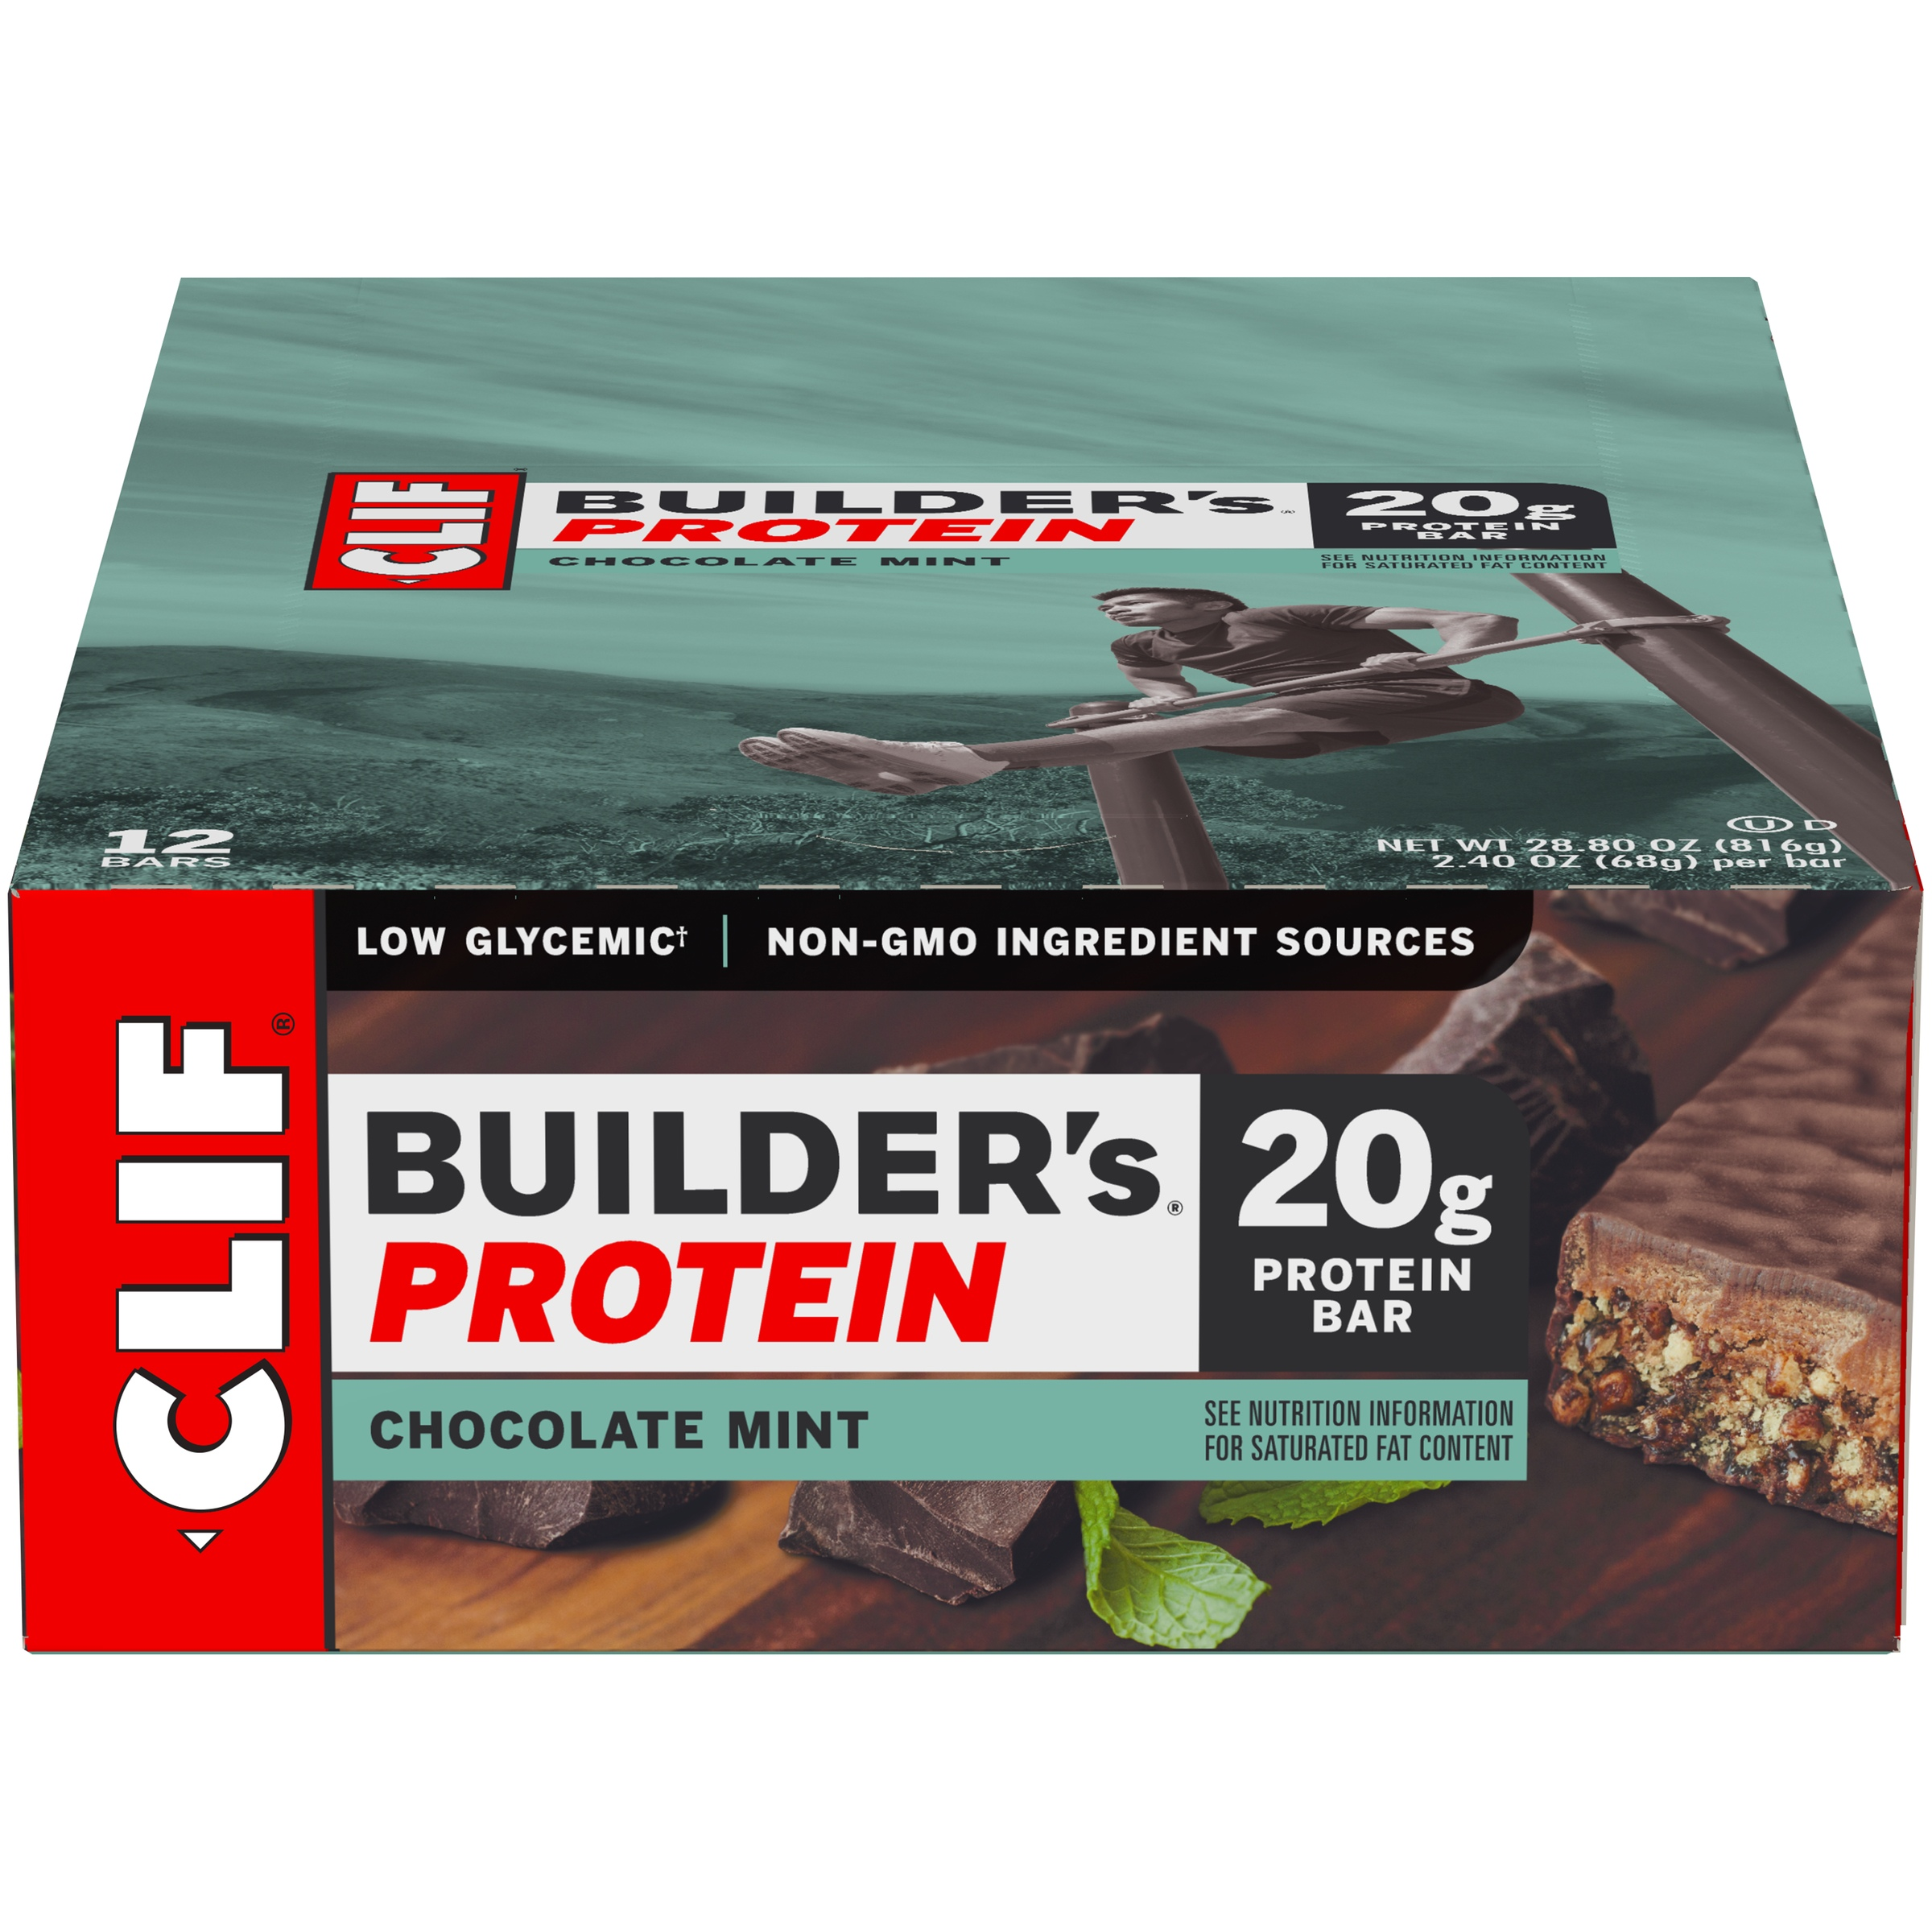 Clif® Builder's® Chocolate Mint Protein Bar 12-2.4 oz. Bars